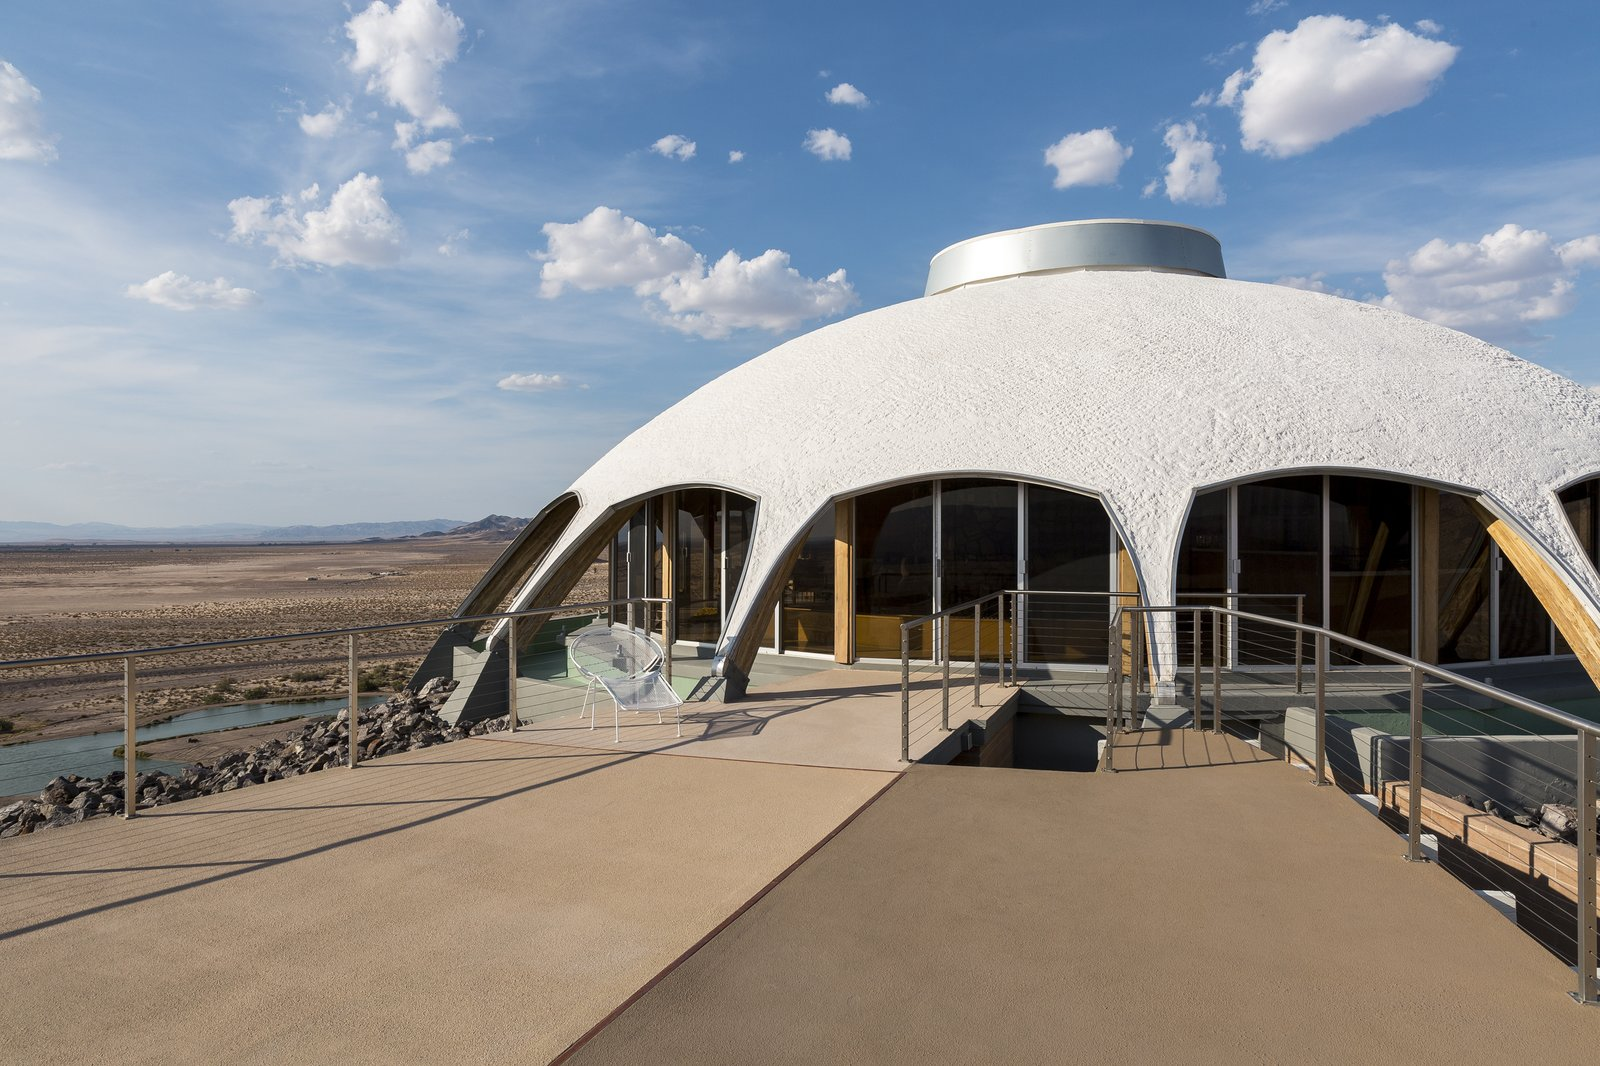 Tagged: Outdoor, Desert, and Large Patio, Porch, Deck. Volcano House by lance gerber